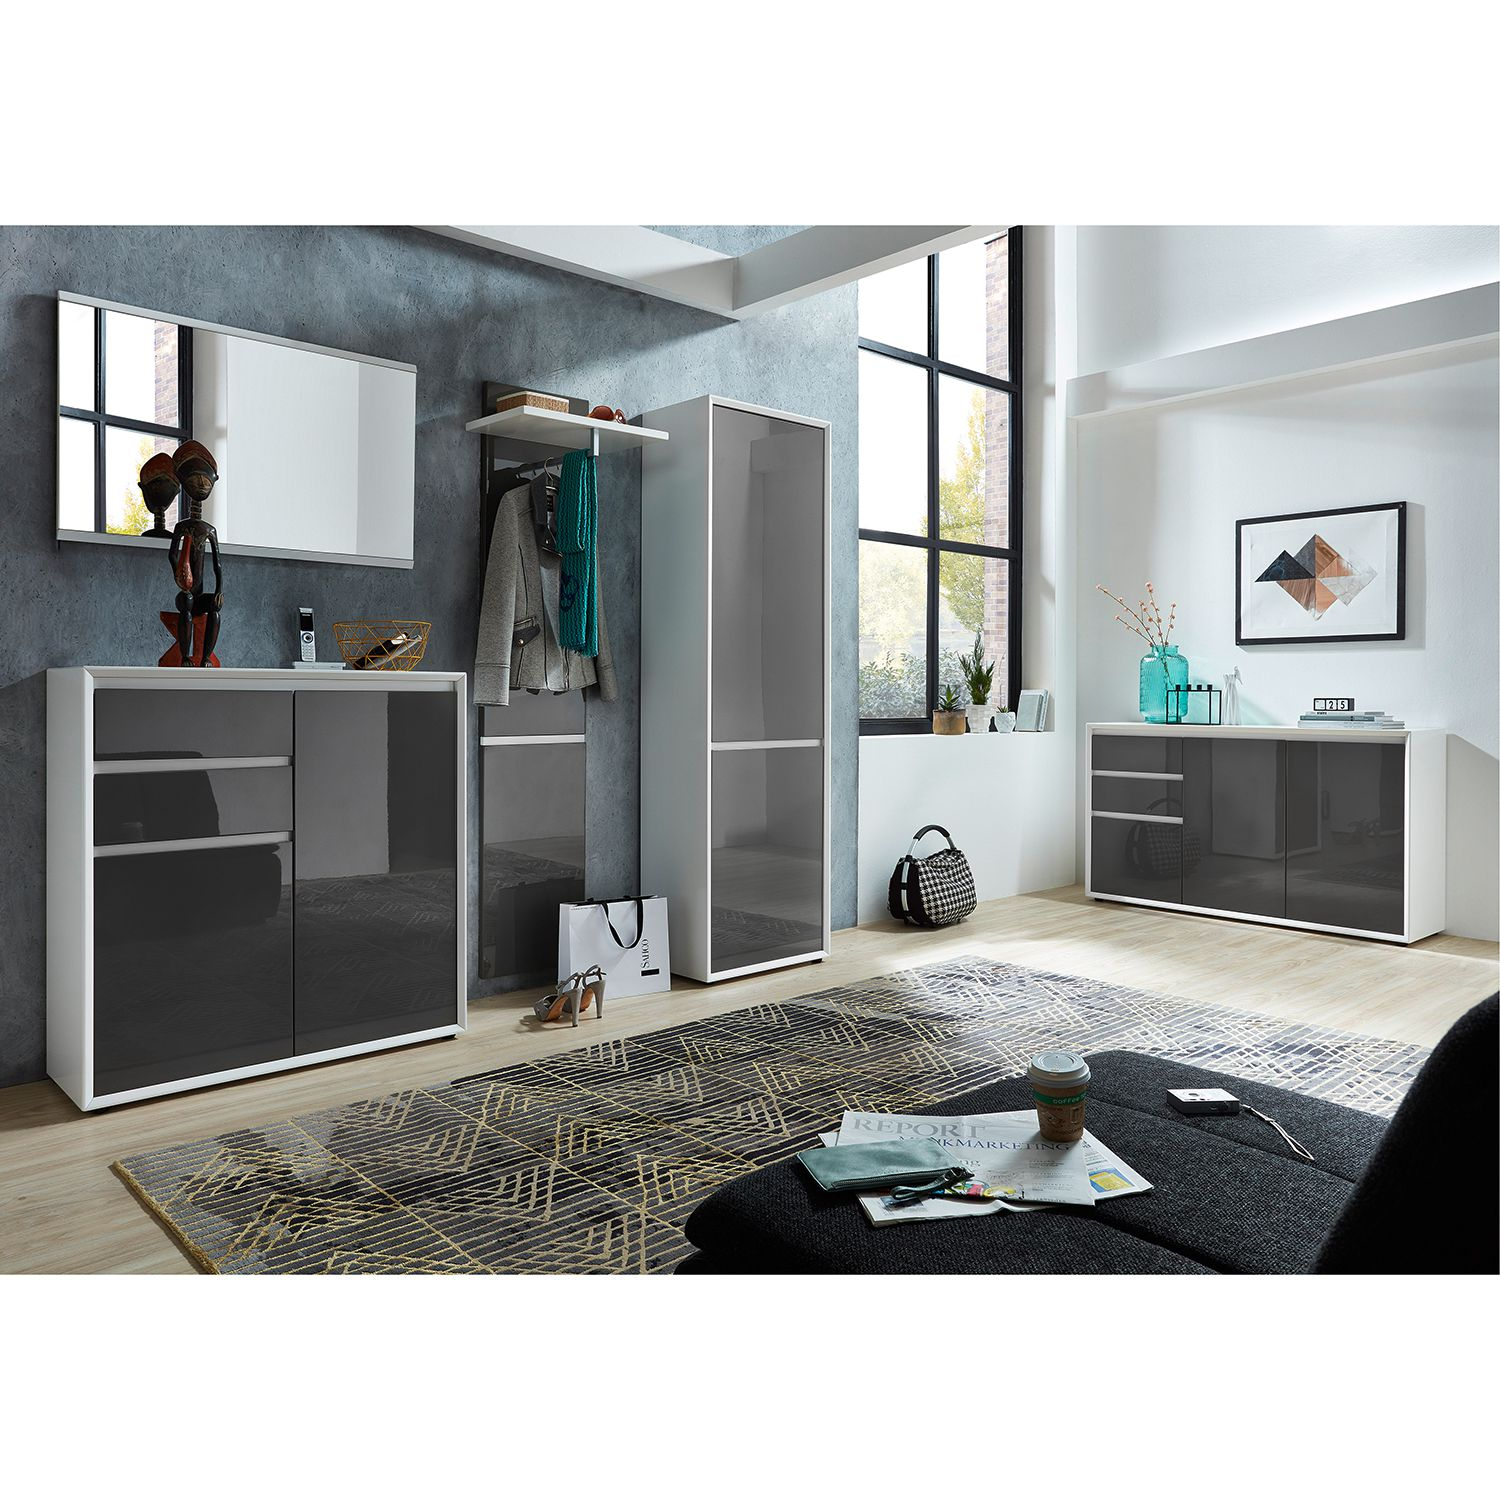 34 sparen schuhkommde maluti 100cm breit nur 214 99 cherry m bel home24. Black Bedroom Furniture Sets. Home Design Ideas